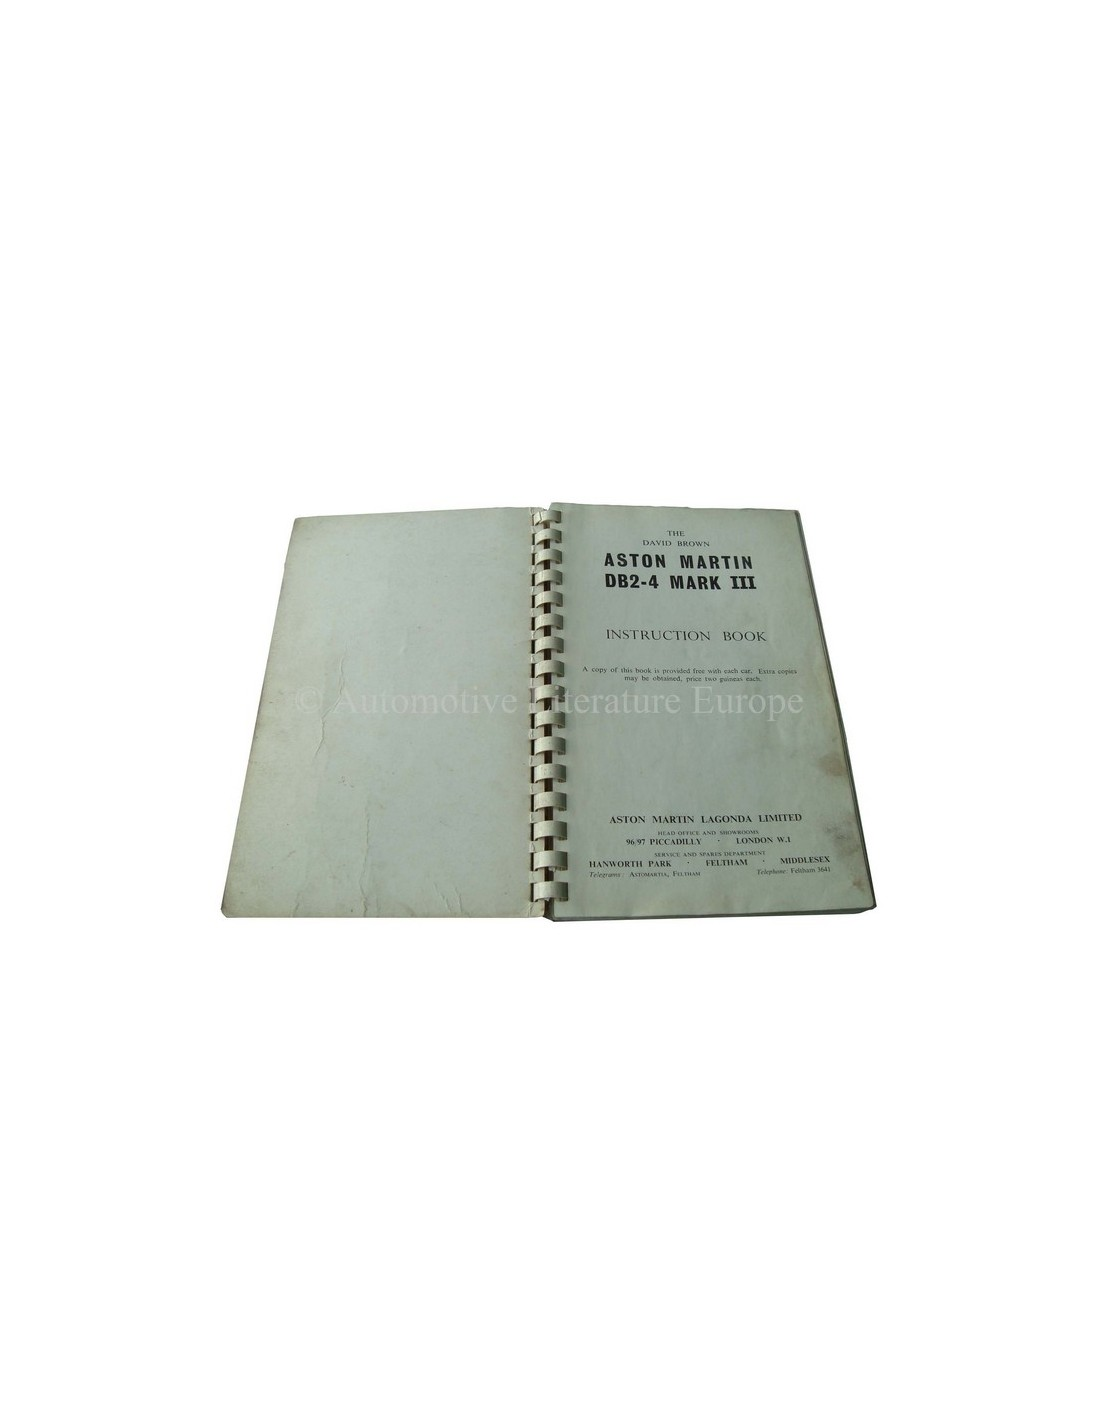 1958 Aston Martin Db2 4 Mk Iii Owner S Manual English border=